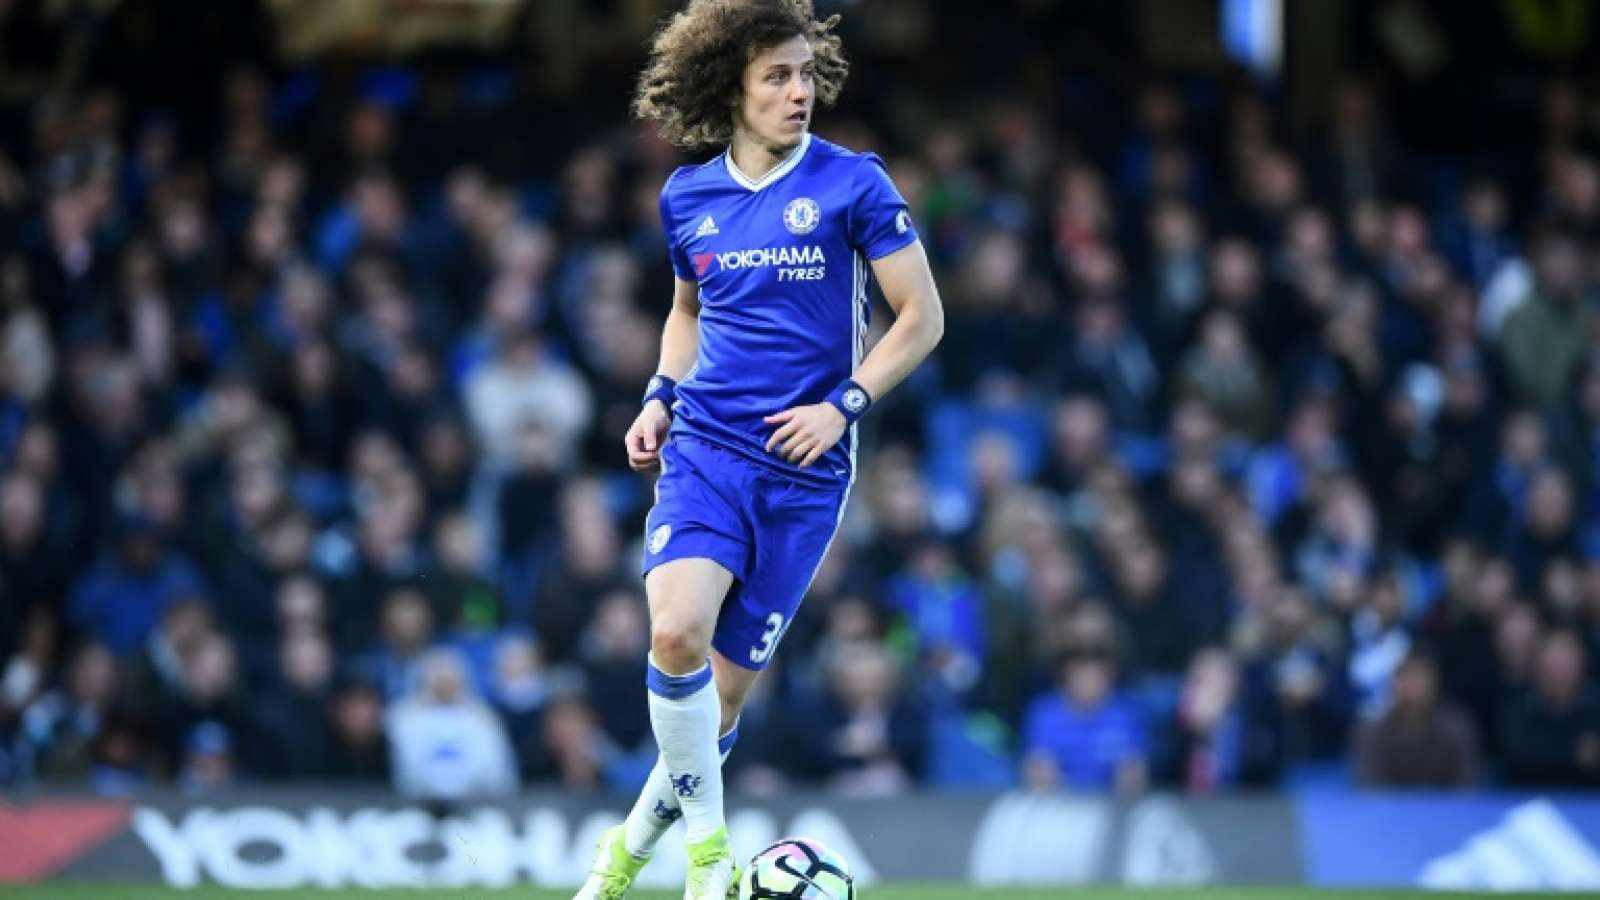 [24+] David Luiz Wallpapers On WallpaperSafari